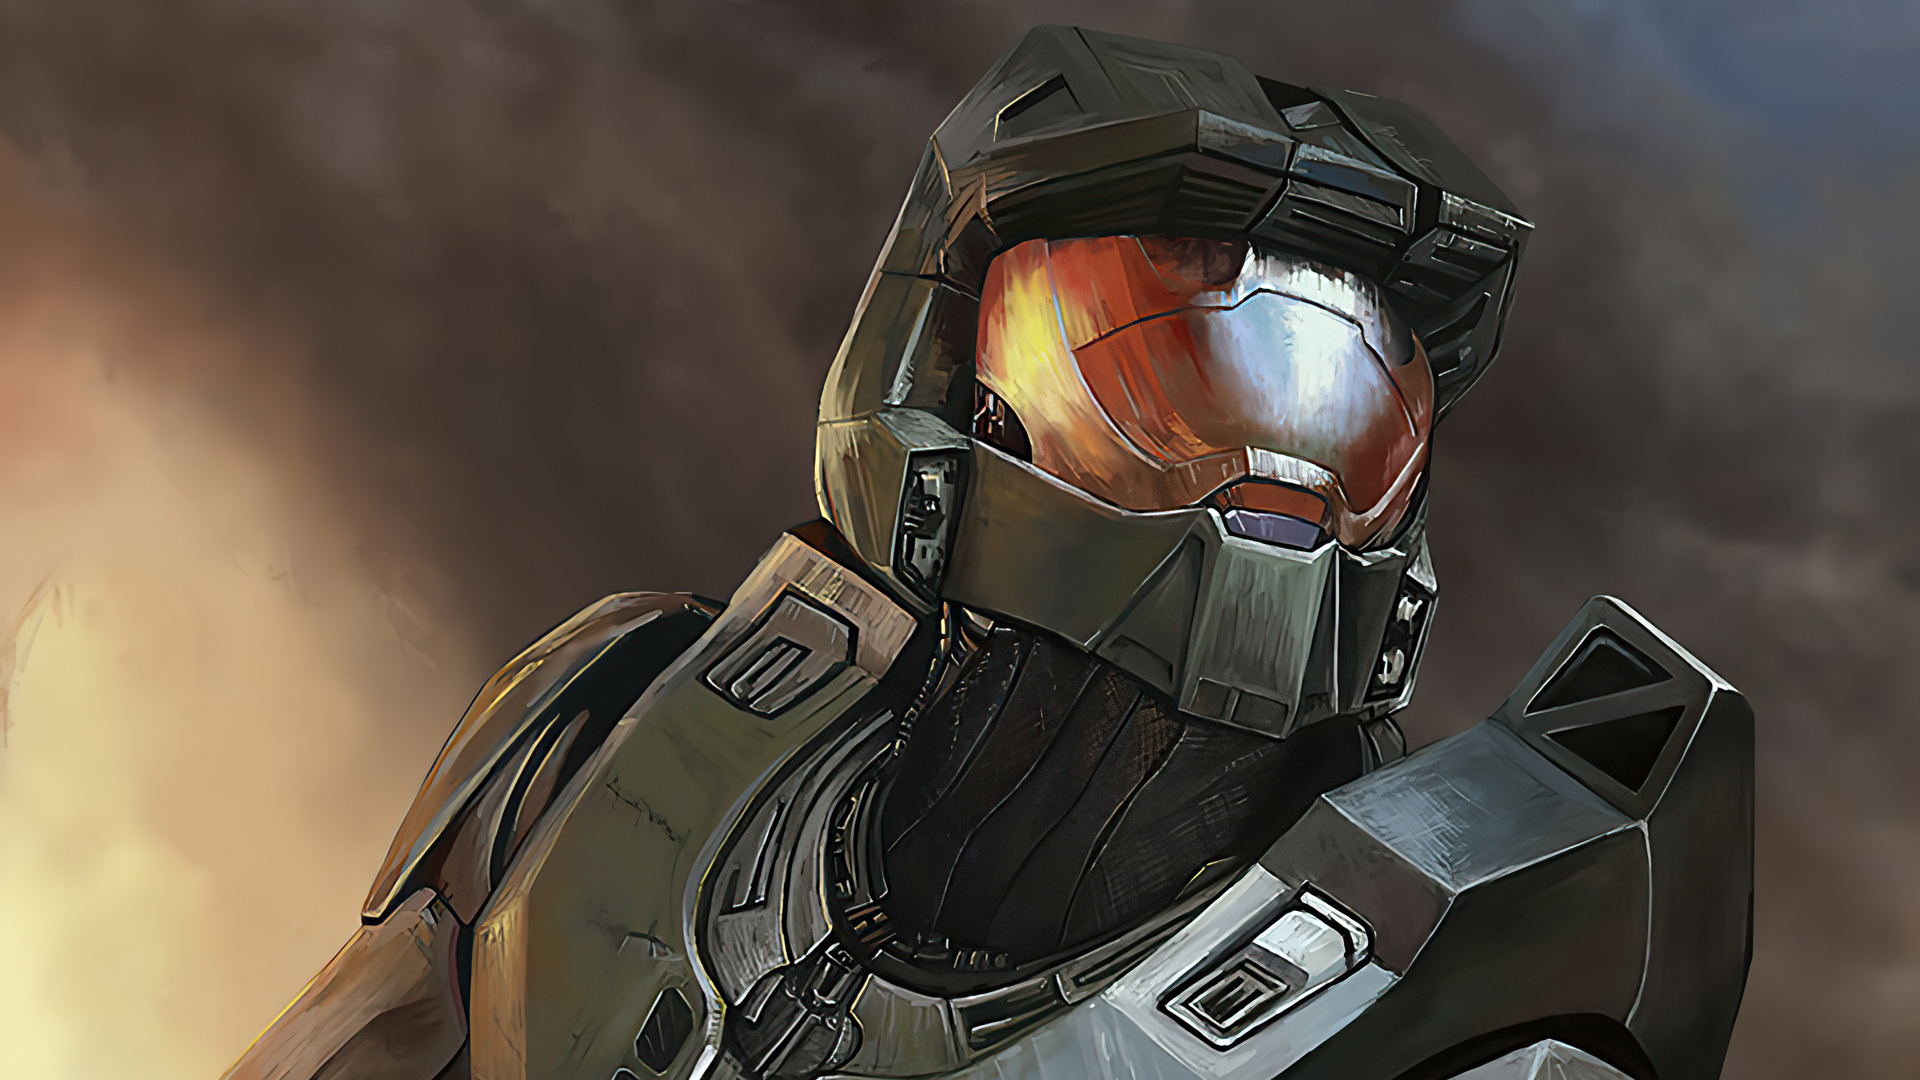 1920x1080 2020 Halo Art Laptop Full HD 1080P HD 4k Wallpapers, Images, Backgrounds, Photos and ...